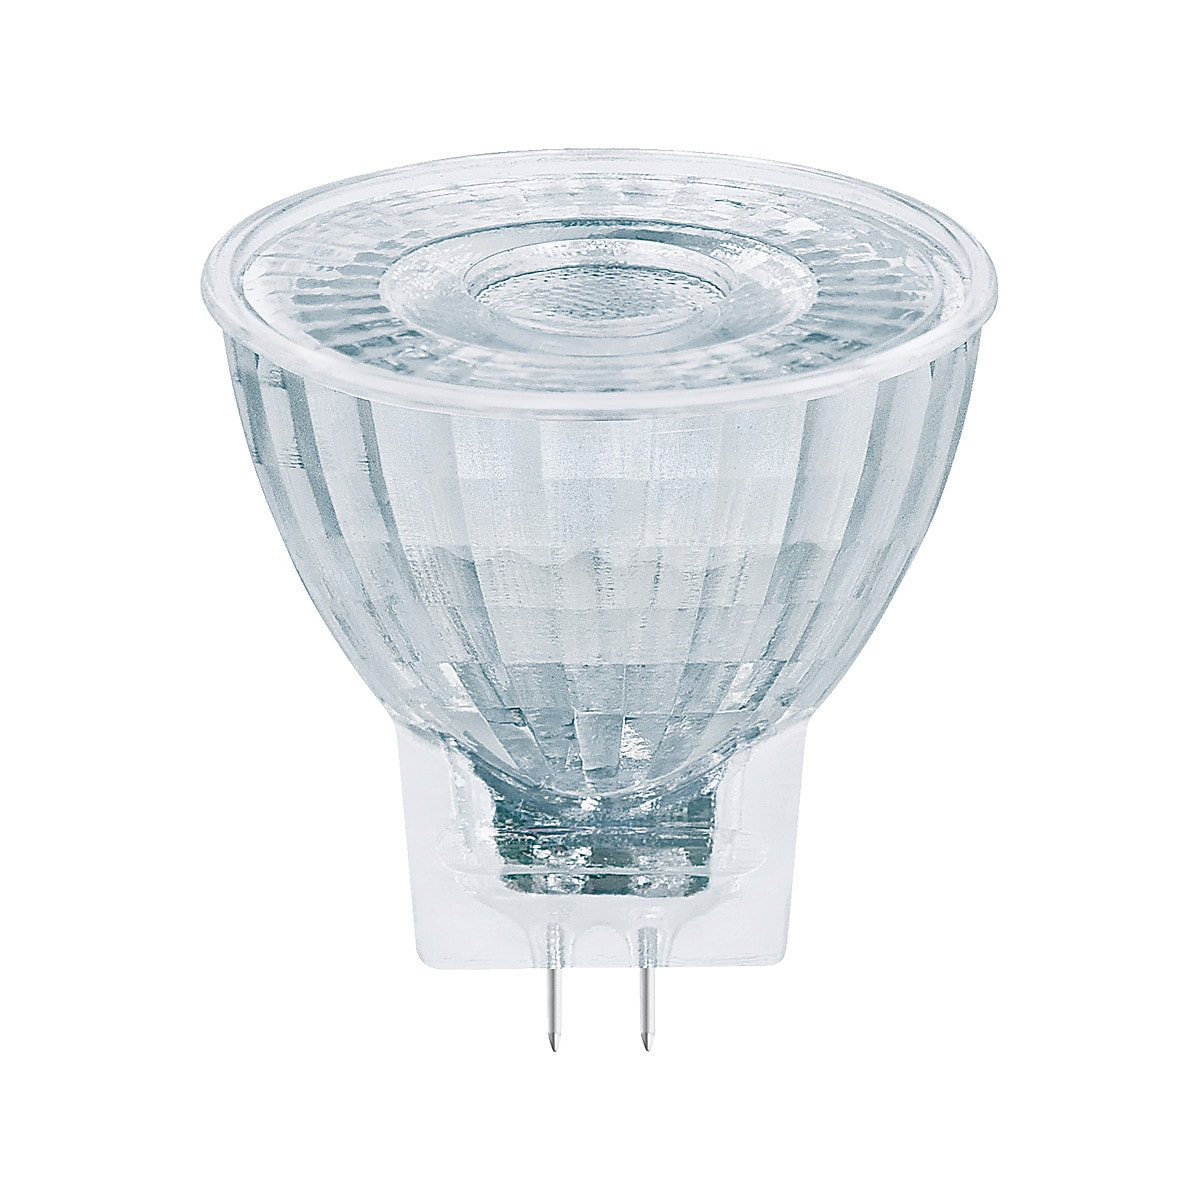 LED-lampa GU4 (MR11) Osram